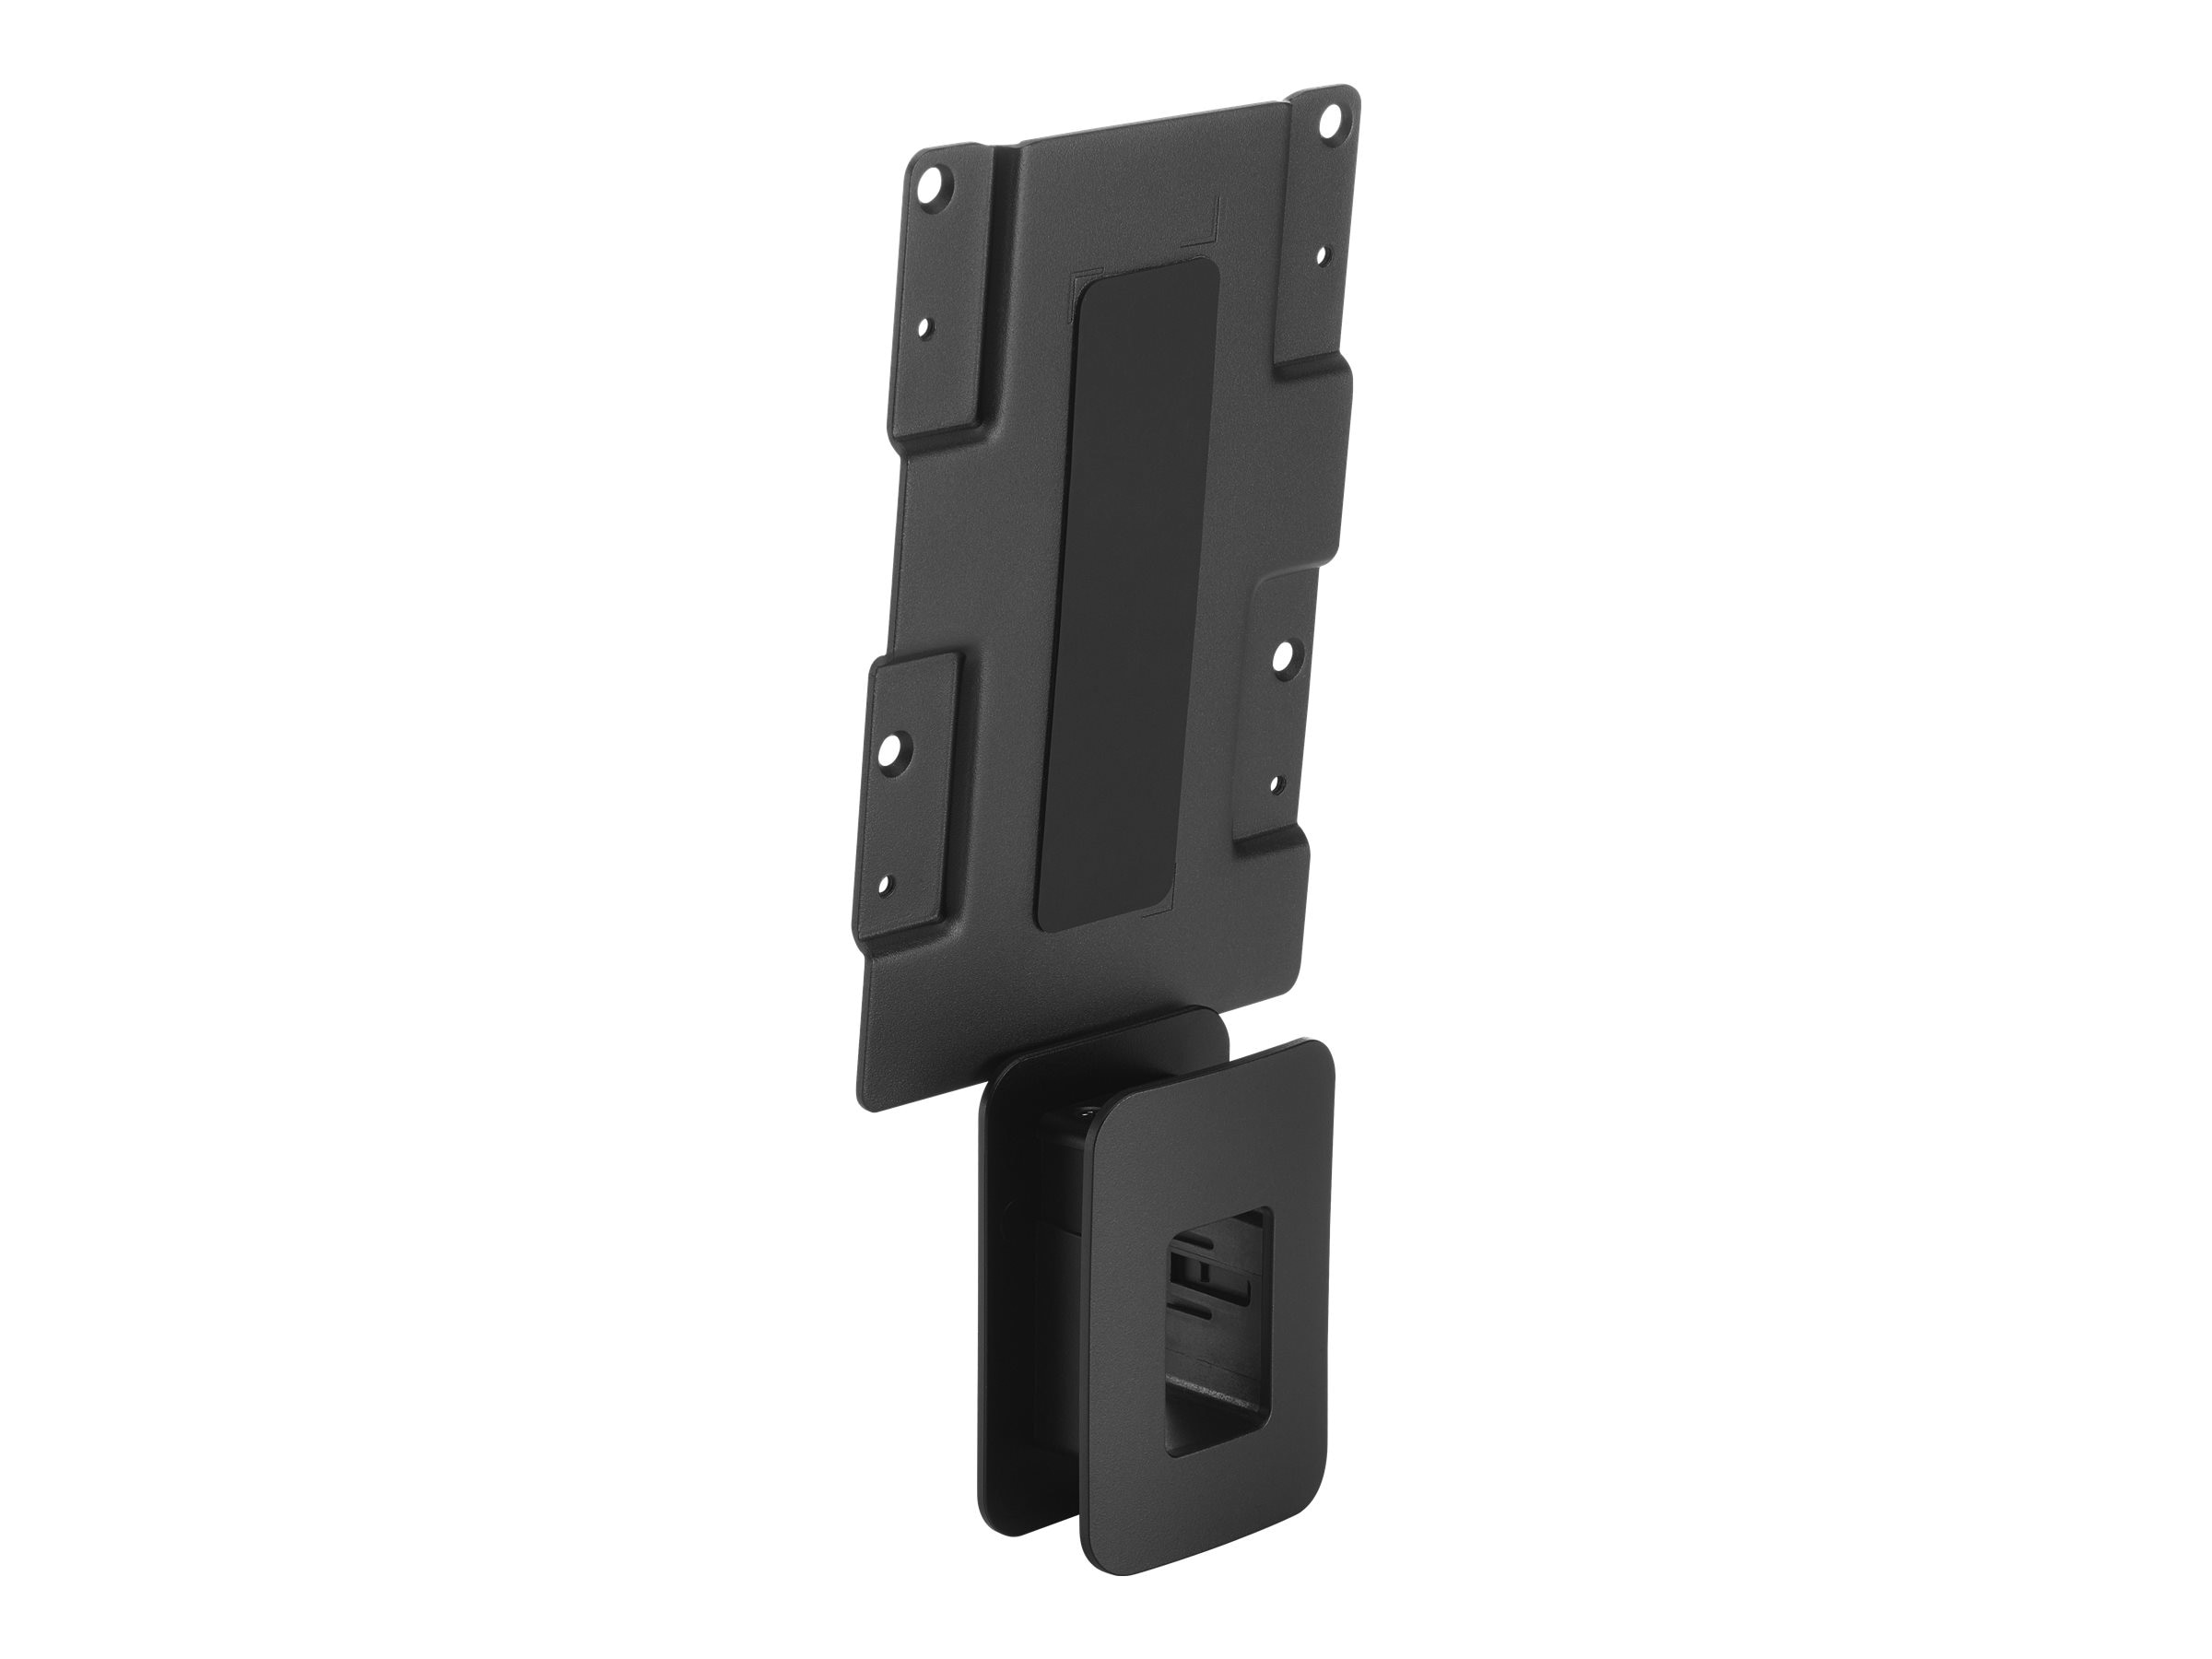 HP Promo PC Mounting Bracket for Monitors, N6N00AT#ABA, 30896856, Mounting Hardware - Miscellaneous